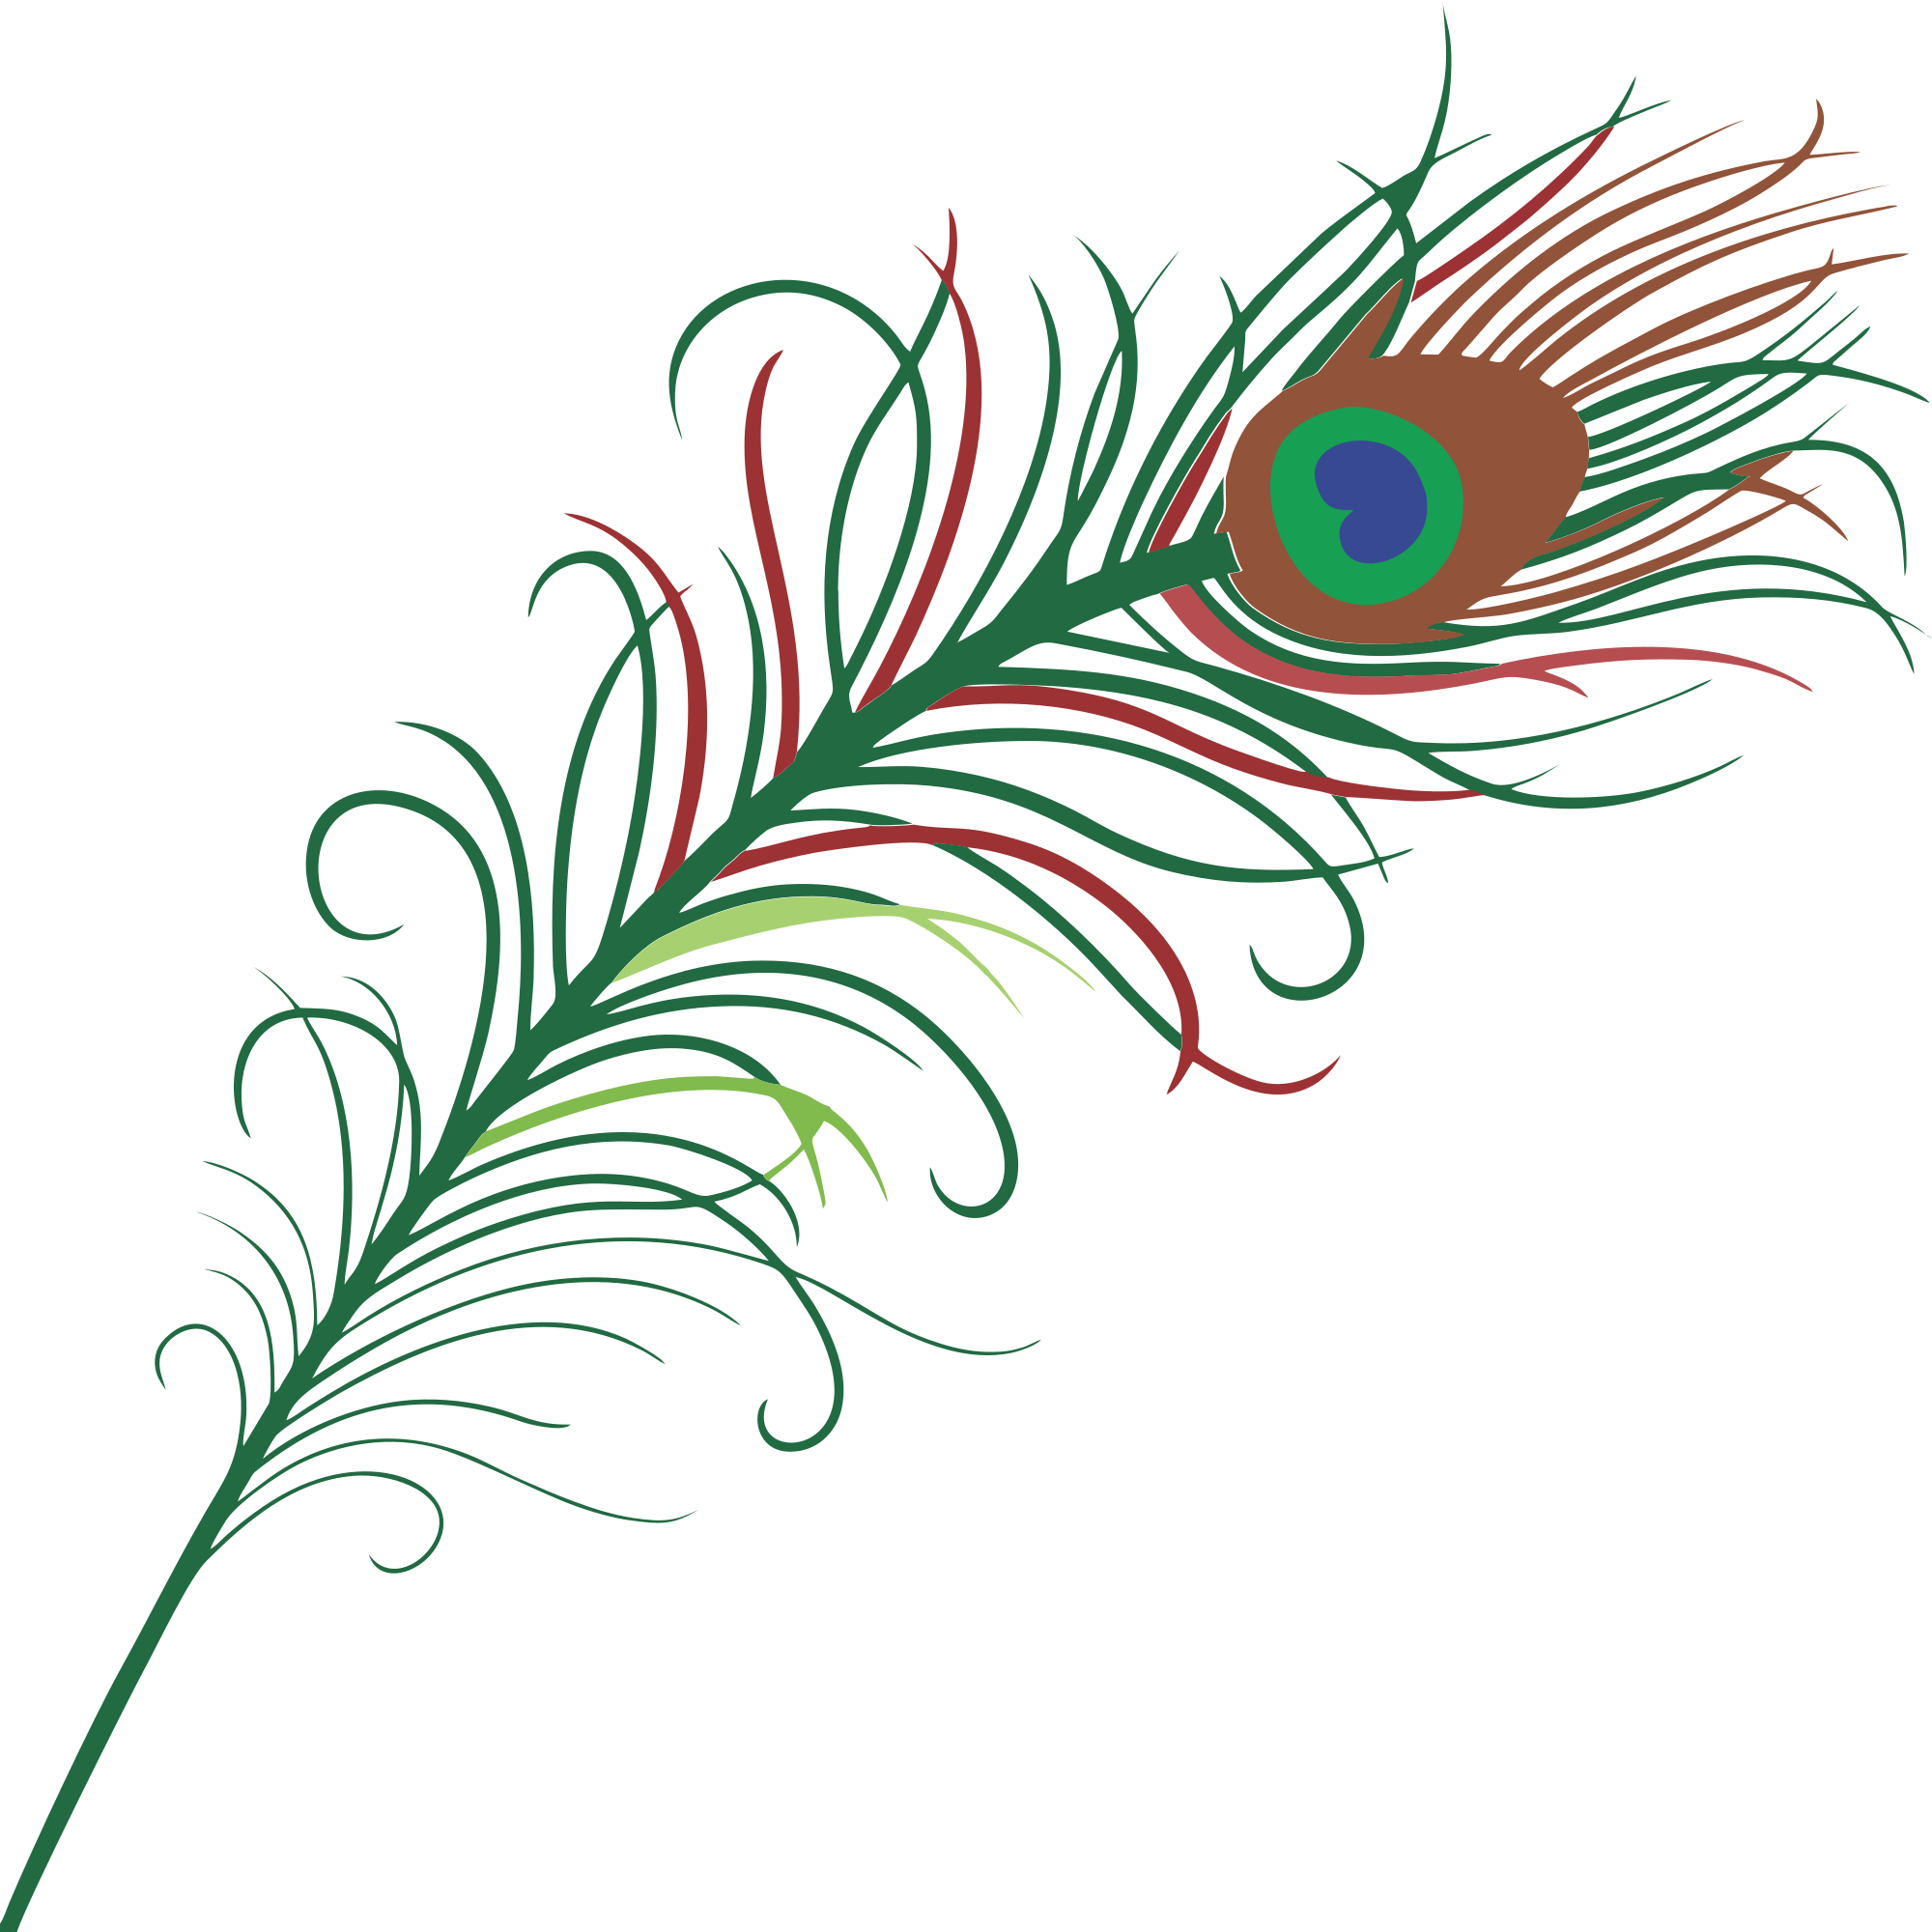 2000x2000 Free Peacock Feather Clipart Clipart And Vector Image